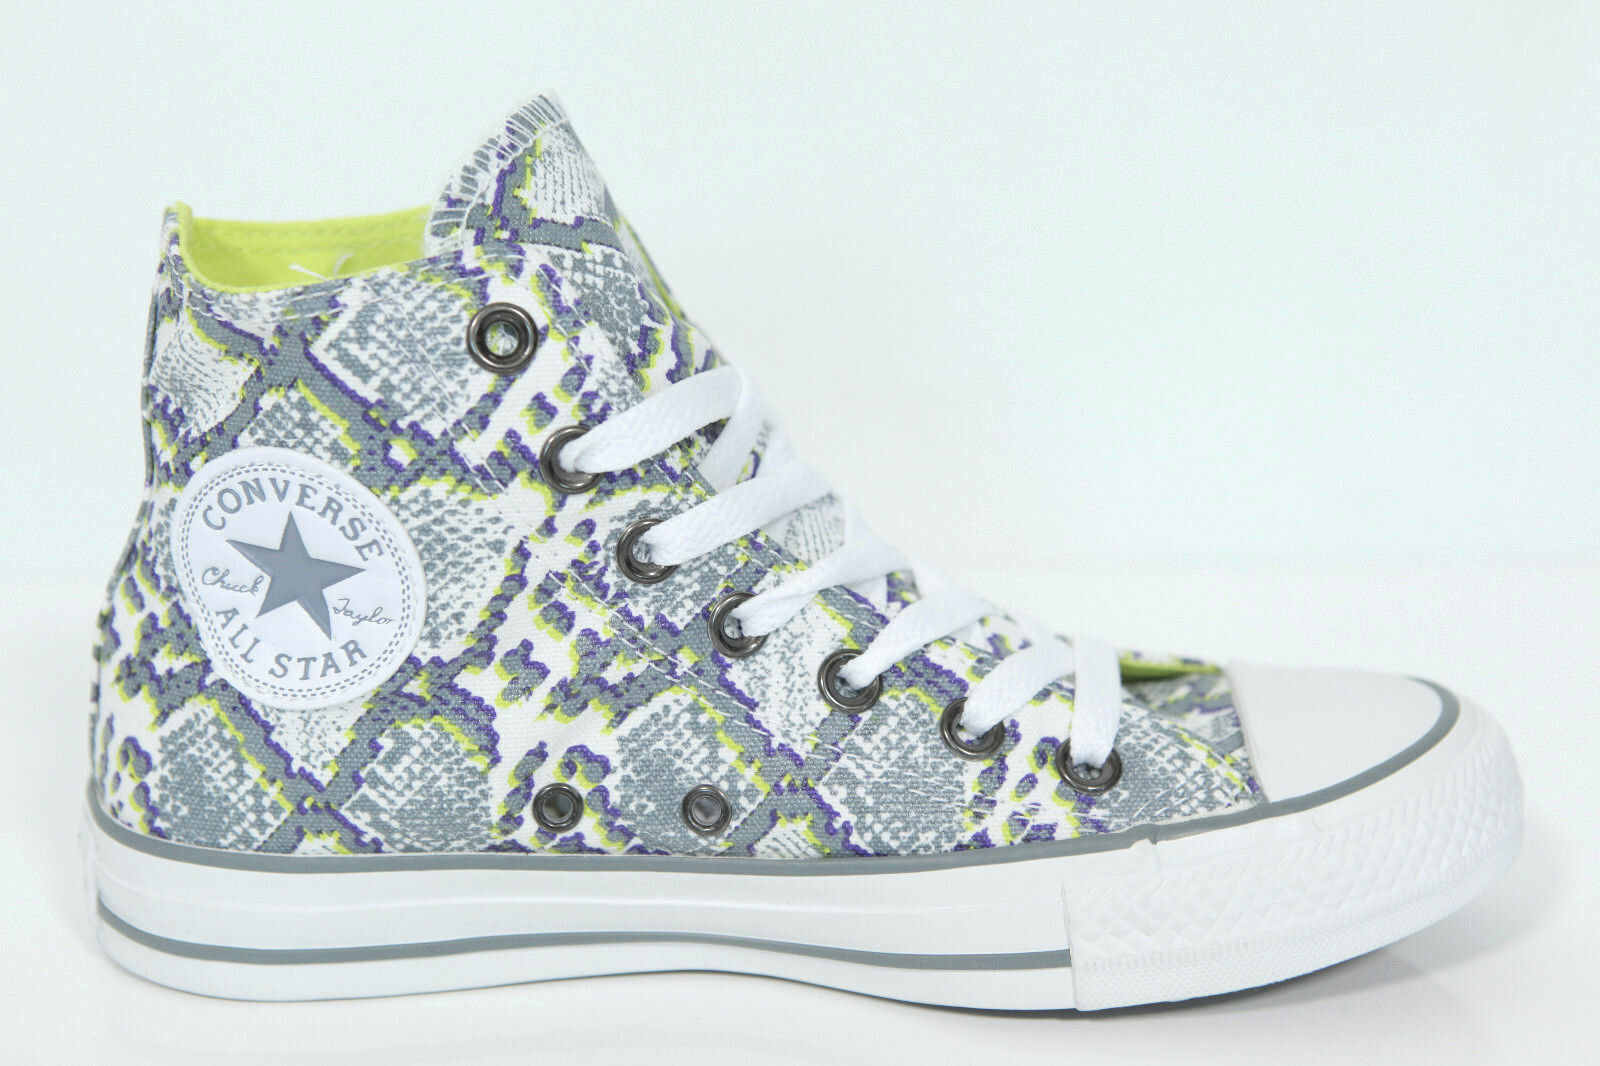 Neu All Star Converse Chucks Hi Sneaker SCHLANGENLEDER OPTIK Multi Panel 542479c